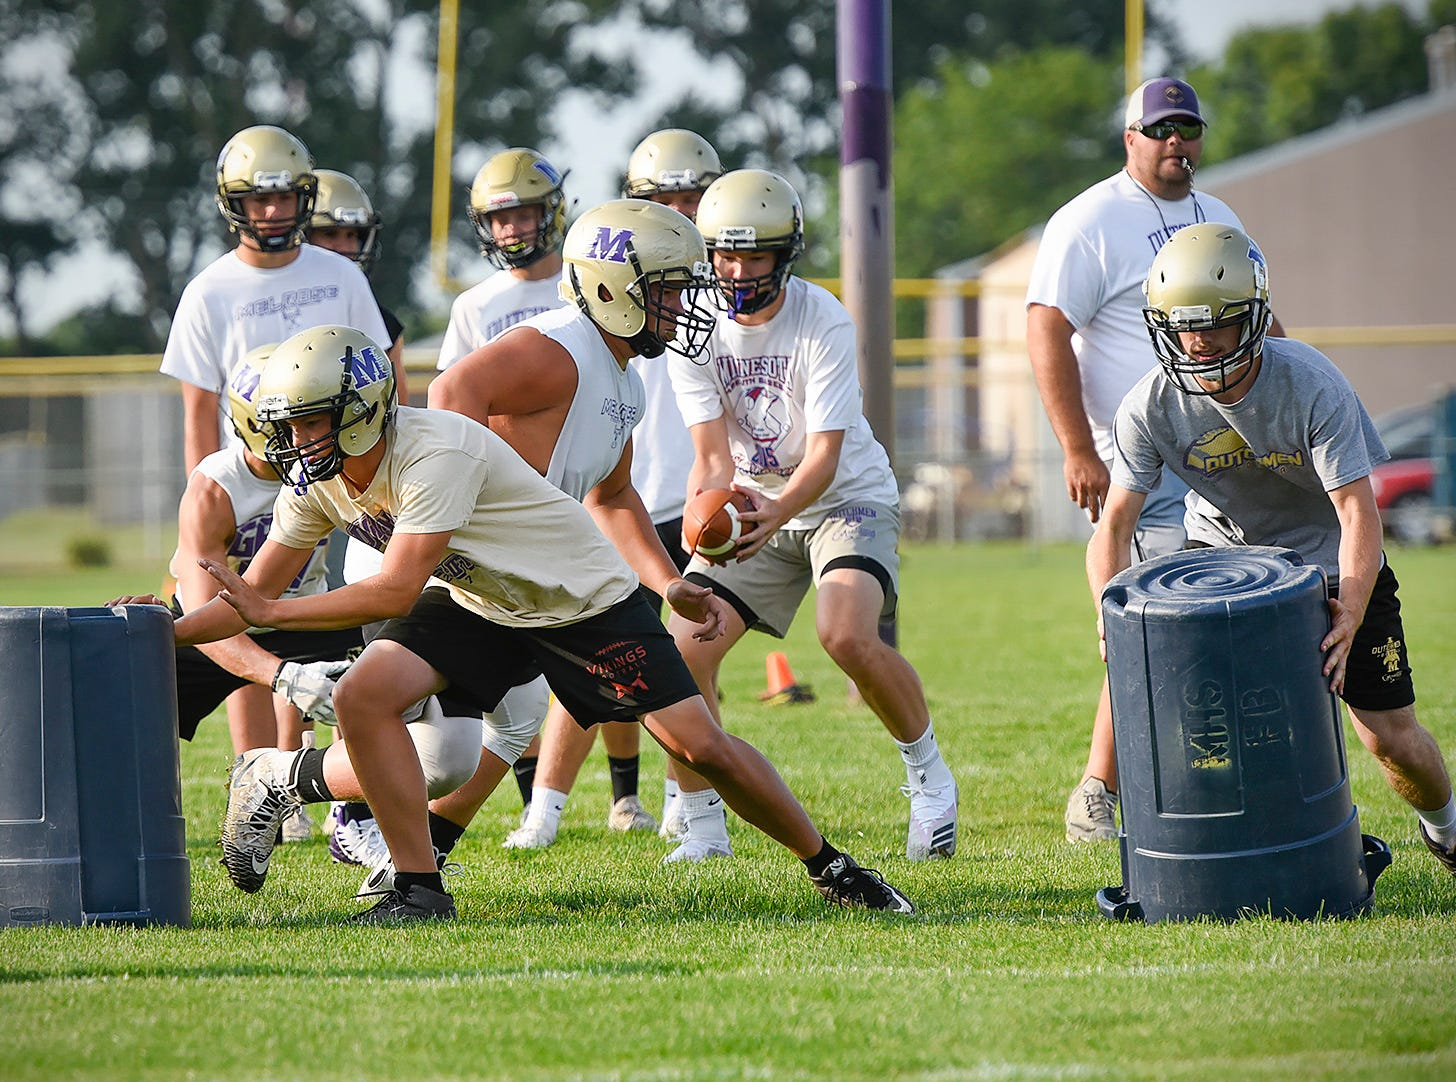 Melrose works on their offense Wednesday, Aug. 15, during practice.